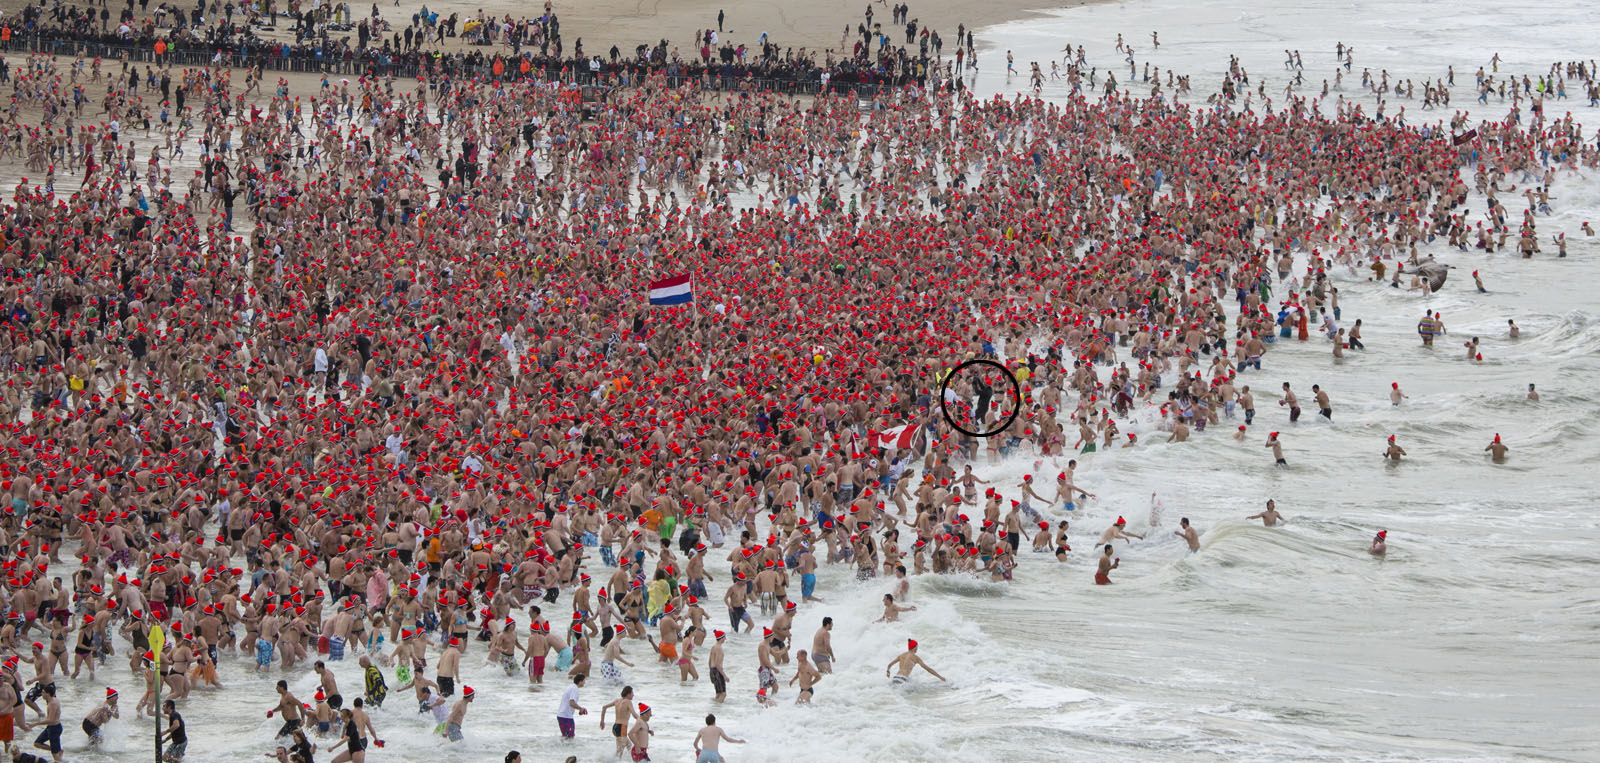 Unox Nieuwjaarsduik 2013 (New Years Dive) - That's me in the circle!